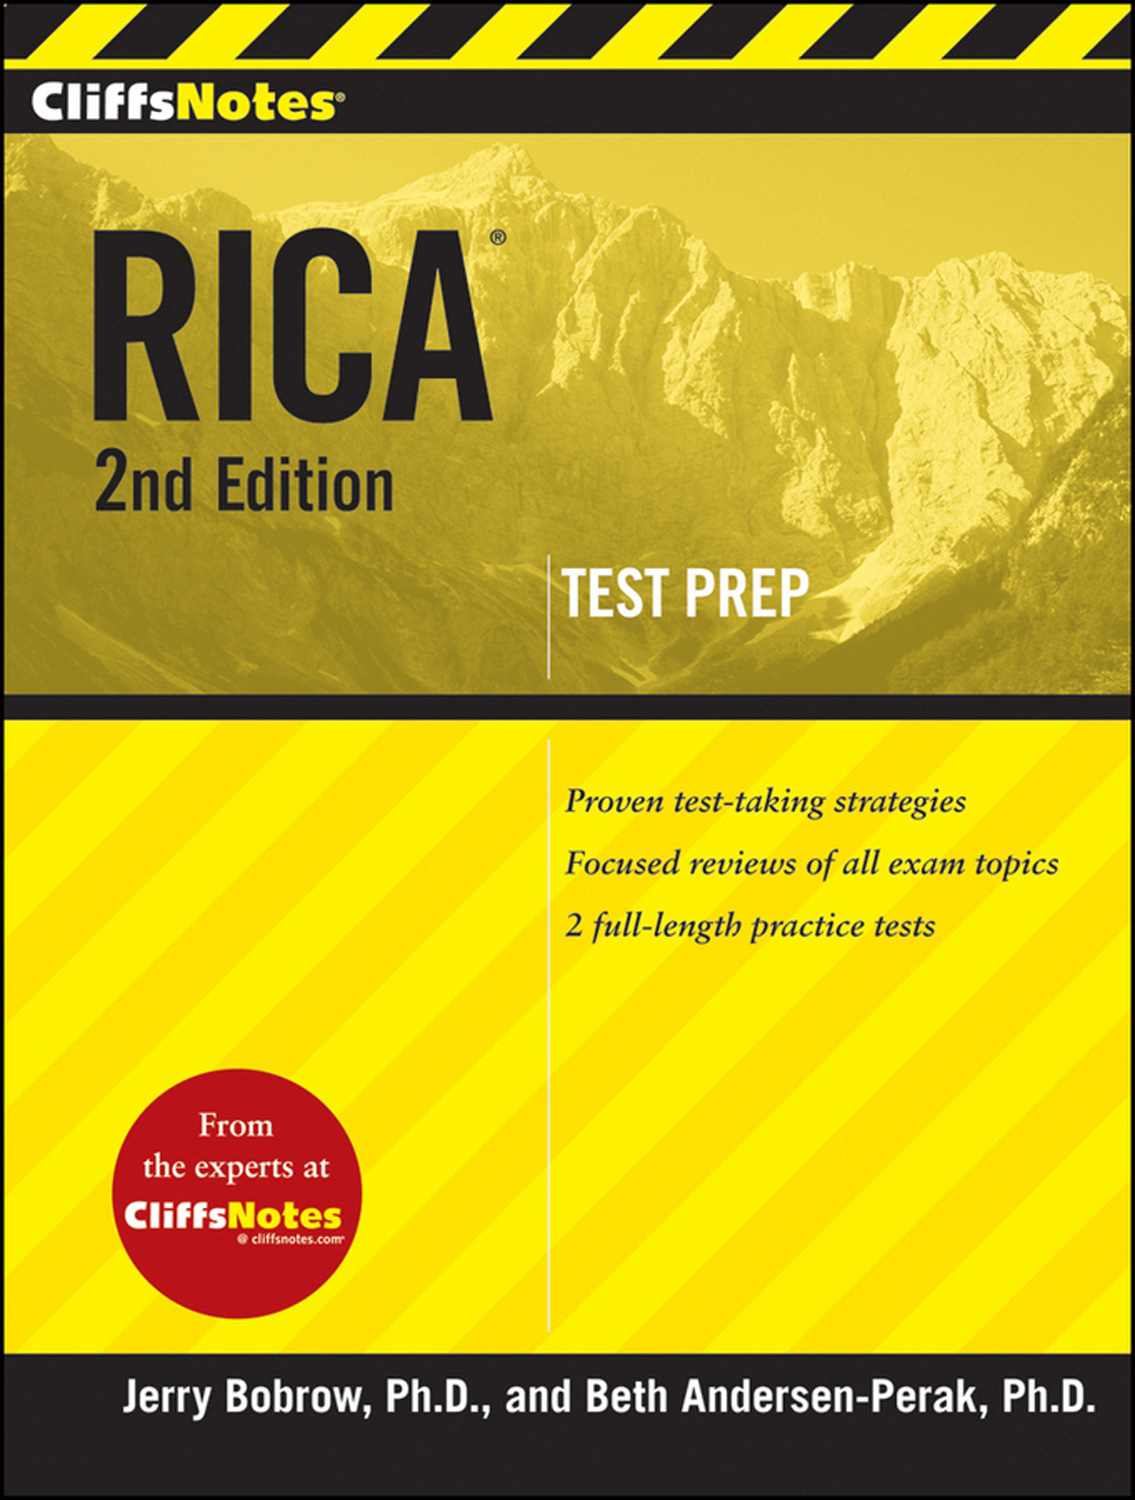 CliffsNotes RICA 2nd Edition-9780470587300